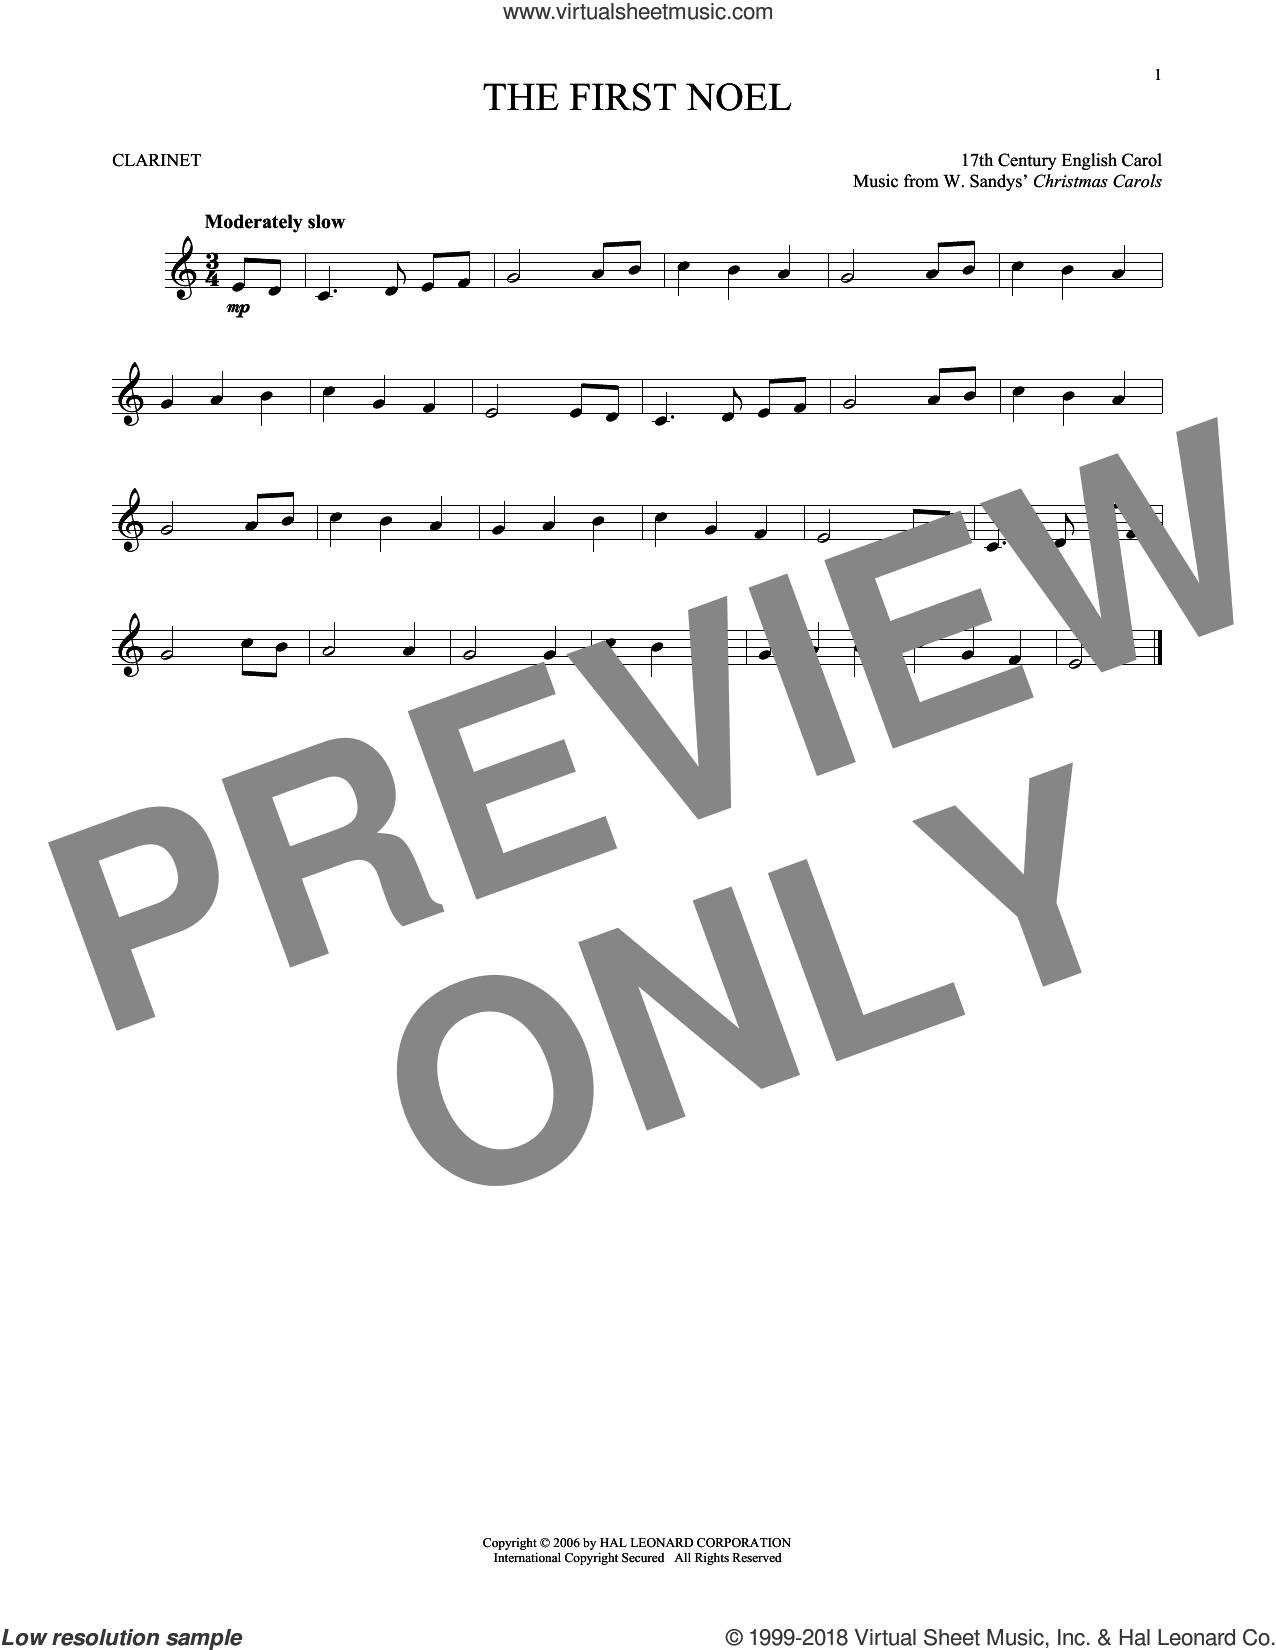 The First Noel sheet music for clarinet solo by W. Sandys' Christmas Carols and Miscellaneous, intermediate skill level